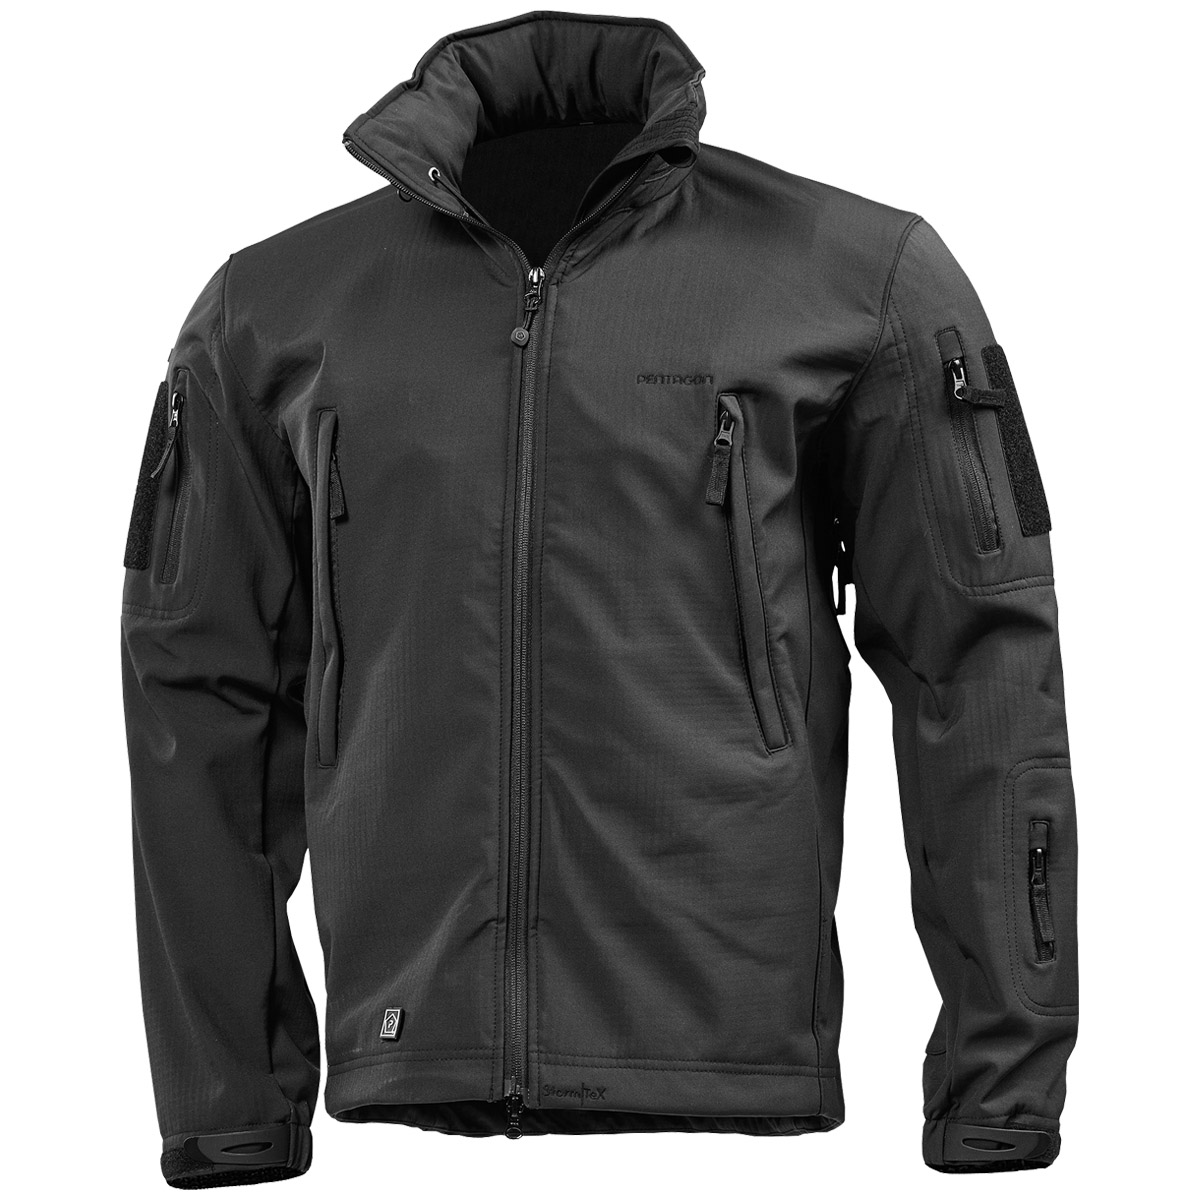 Pentagon Artaxes Army Tactical Softshell Mens Urban Jacket Water Resistant Black | eBay